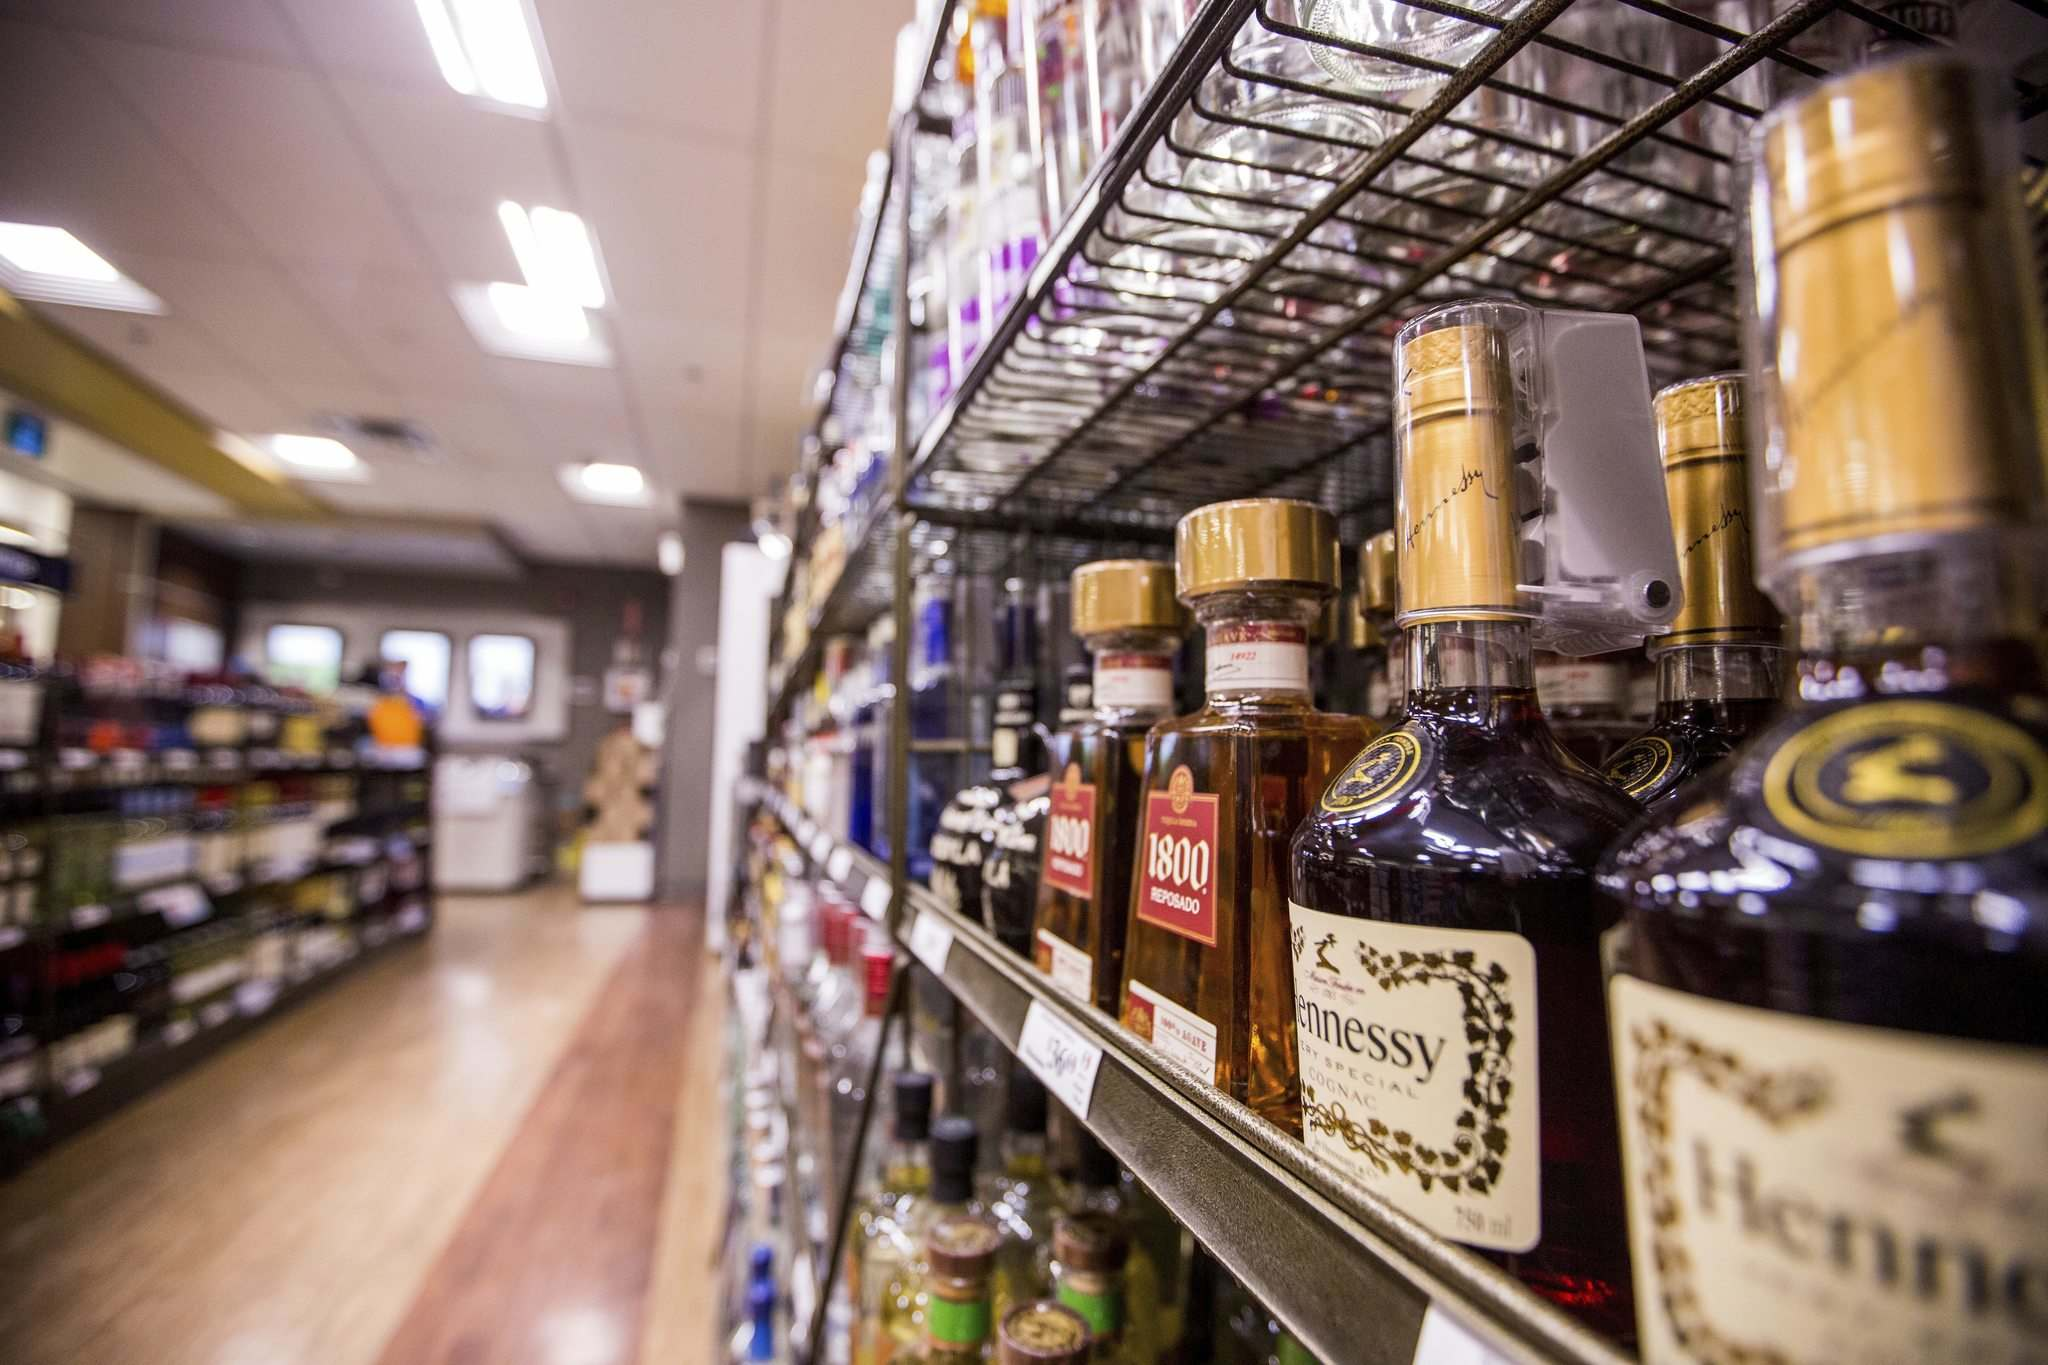 Pallister said he'd like to see more competition, lower prices and better choices in liquor sales. (Mikaela MacKenzie / Free Press files)